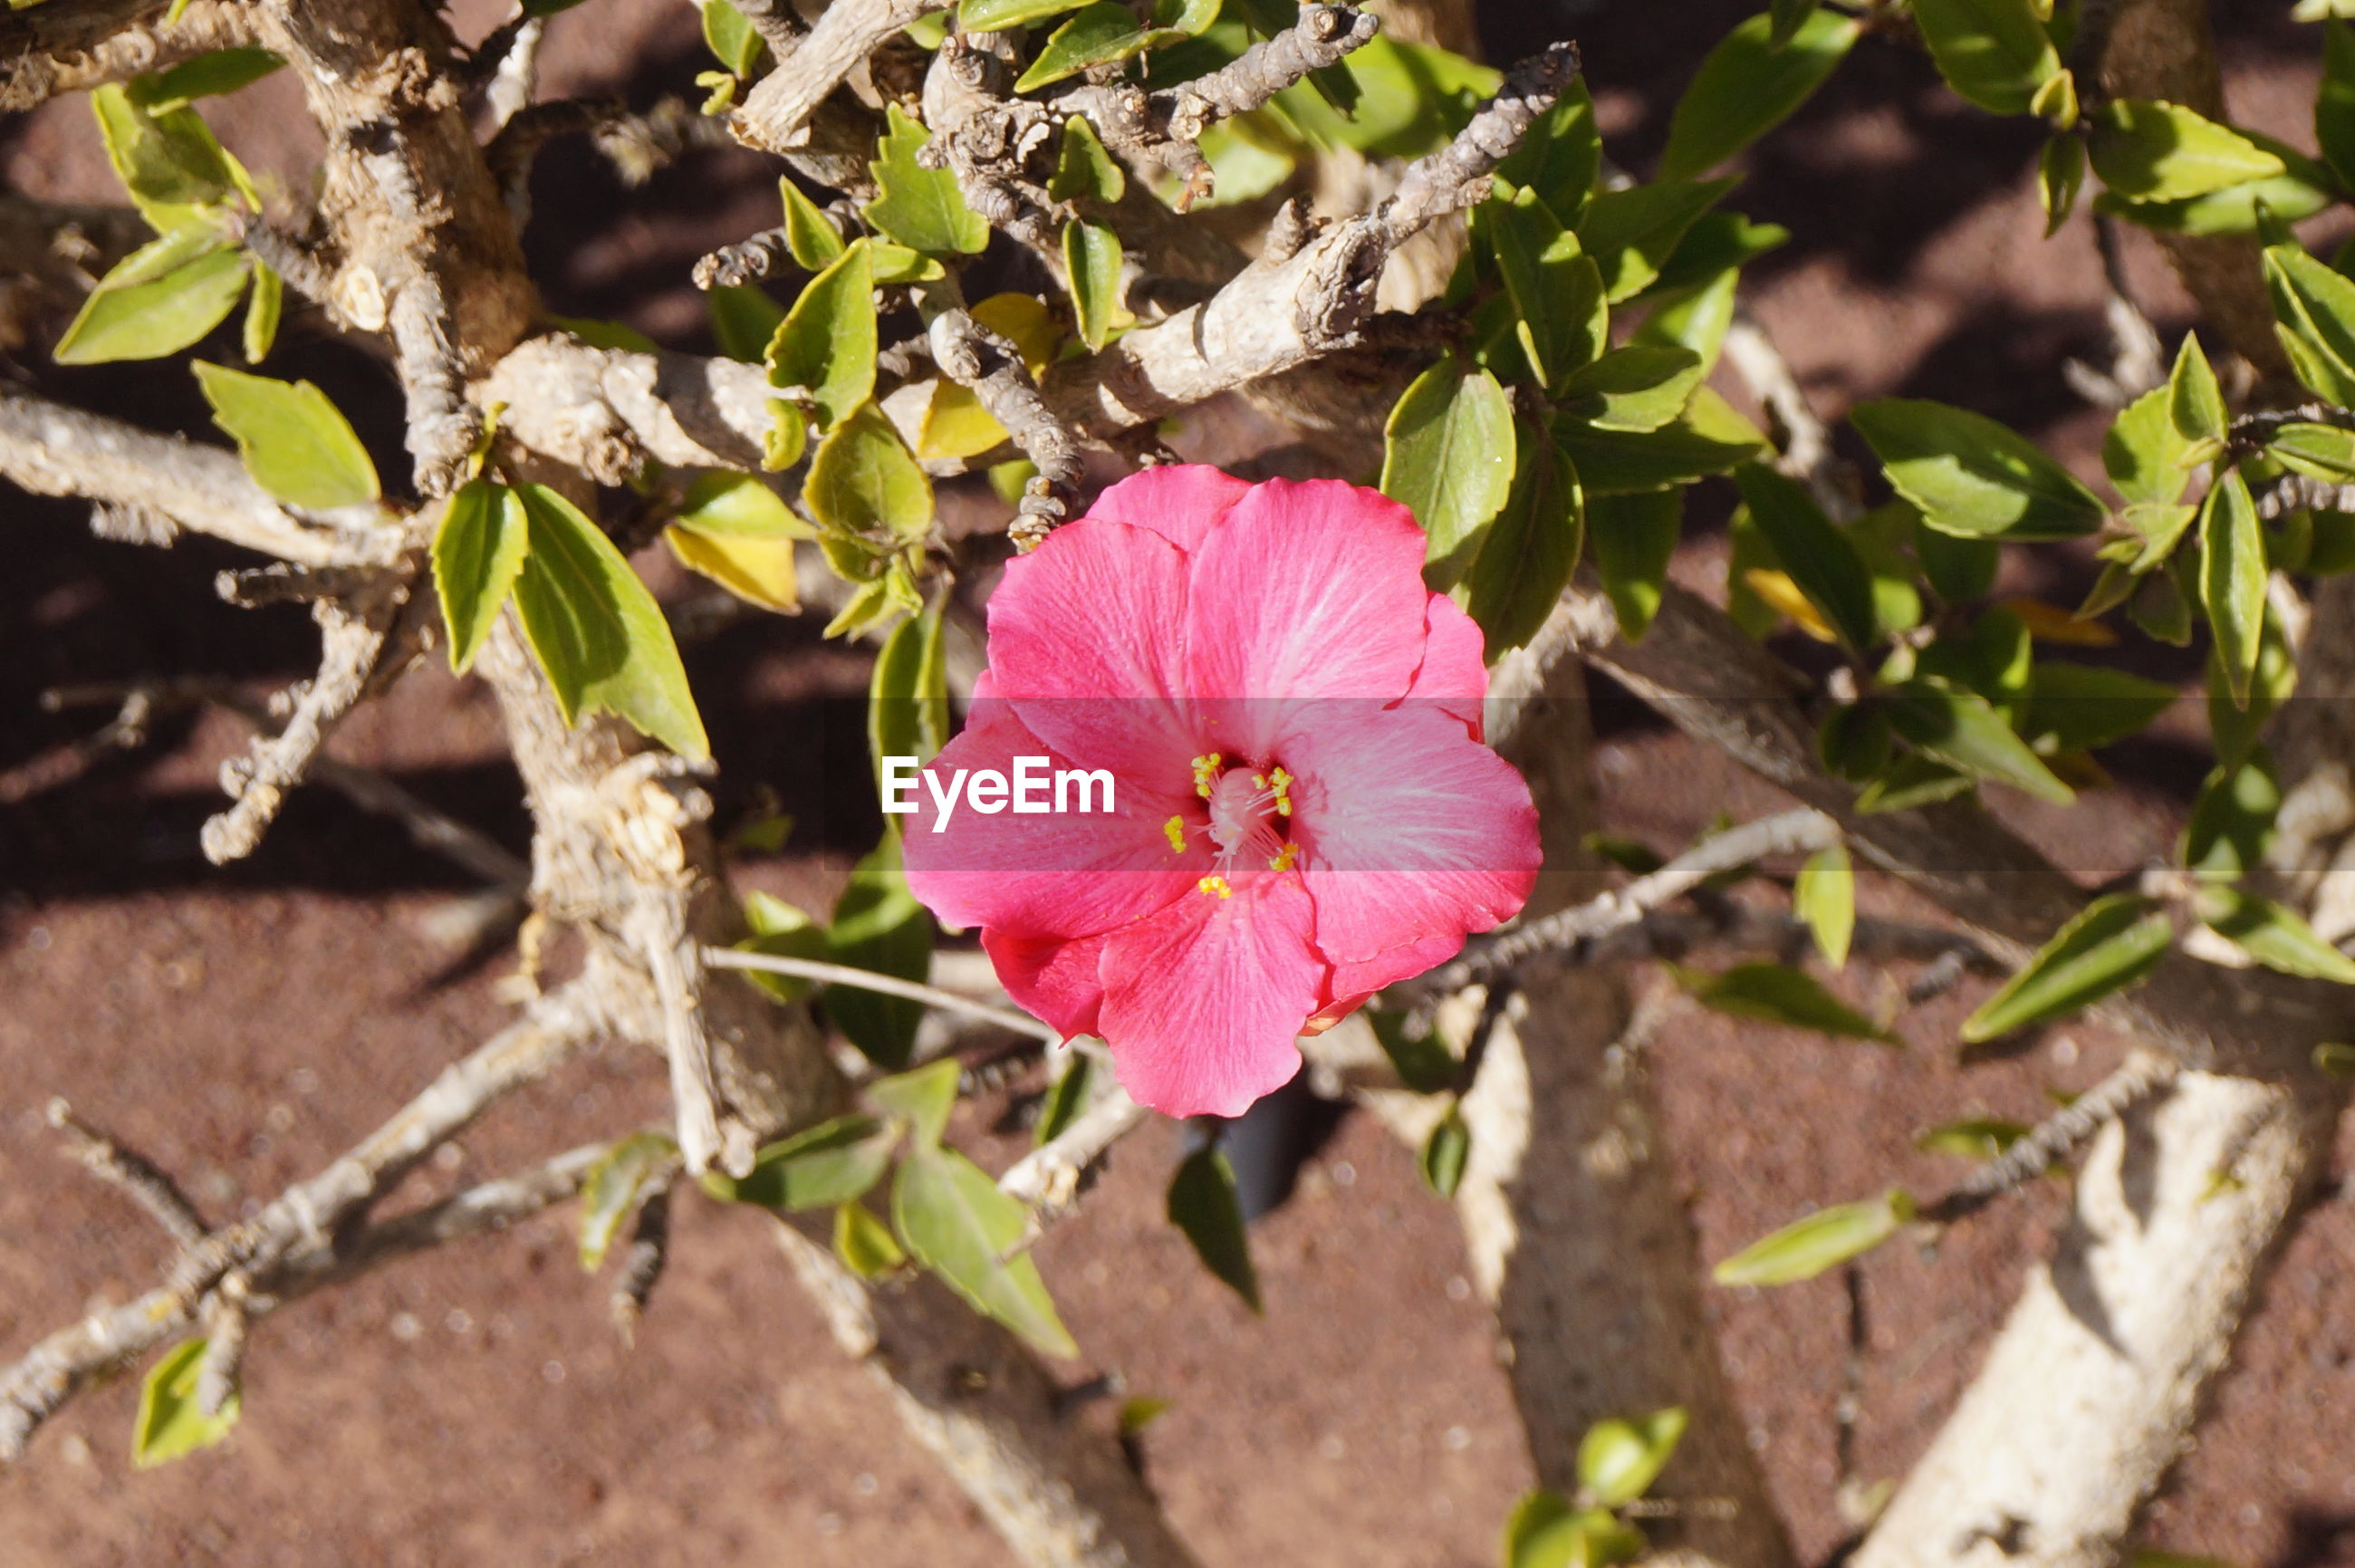 flower, petal, plant, fragility, flower head, growth, nature, beauty in nature, high angle view, outdoors, pink color, day, close-up, freshness, blooming, no people, leaf, petunia, hibiscus, periwinkle